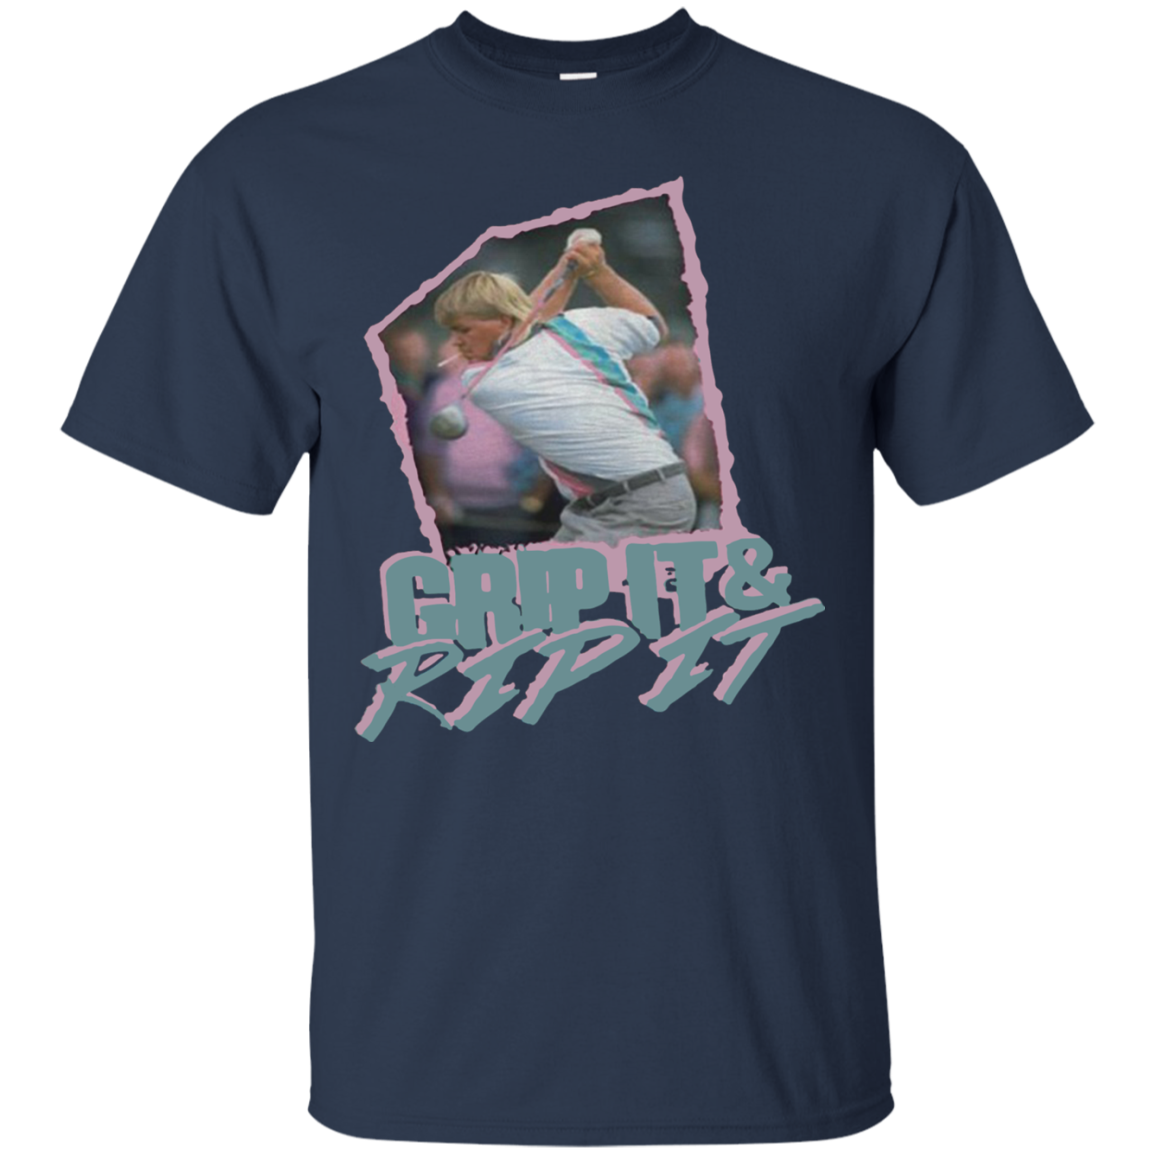 John Daly Grip It and Rip It Cotton T Shirt Men